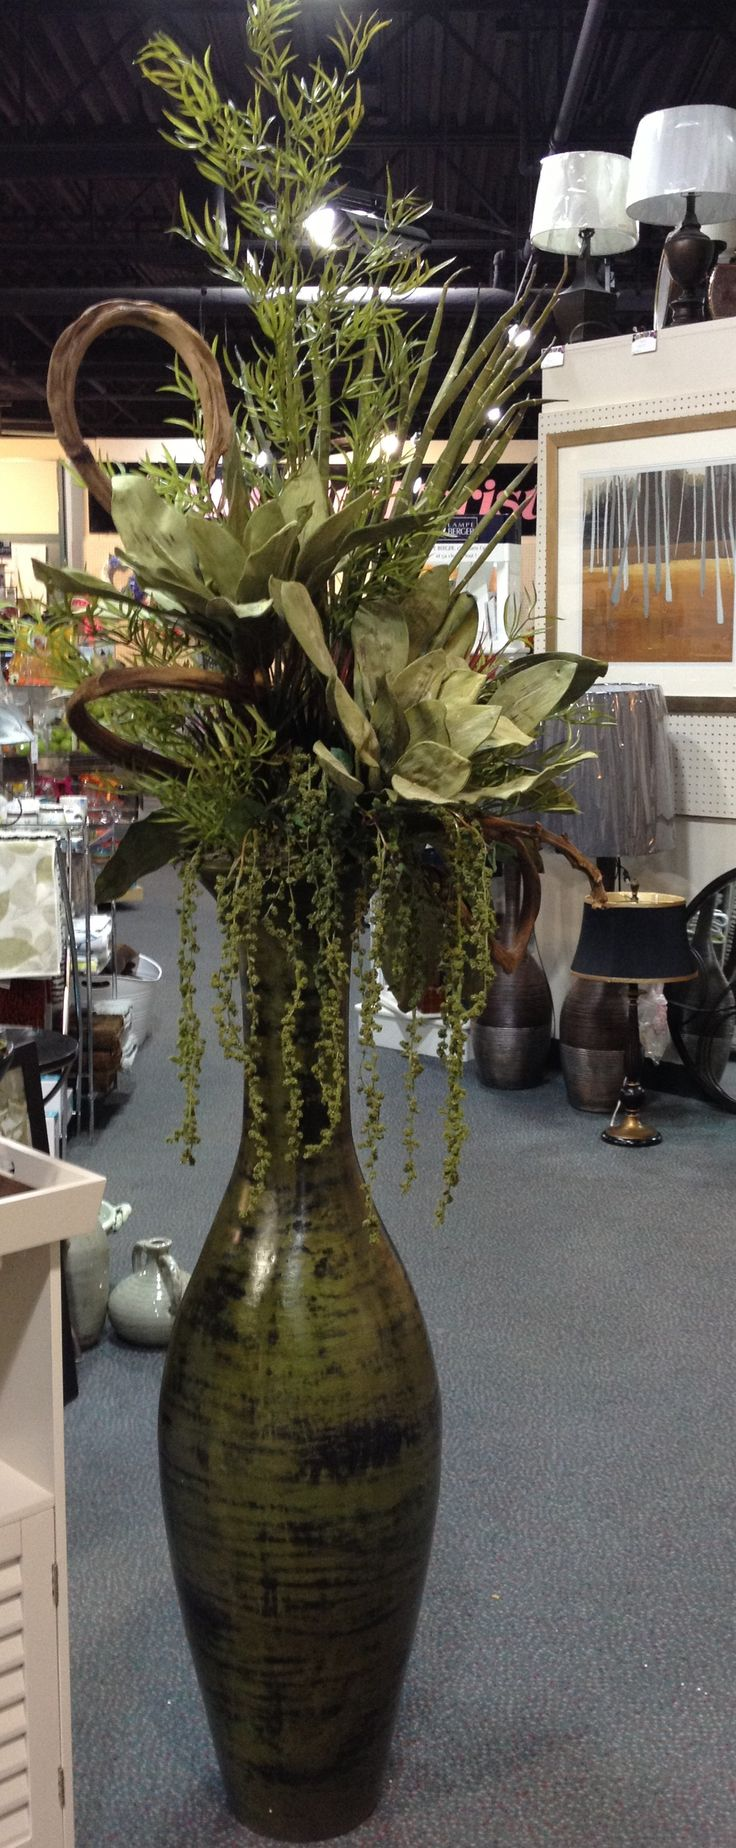 LARGE FLOOR VASE ARRANGEMENT - Designed by Sandra MacPherson